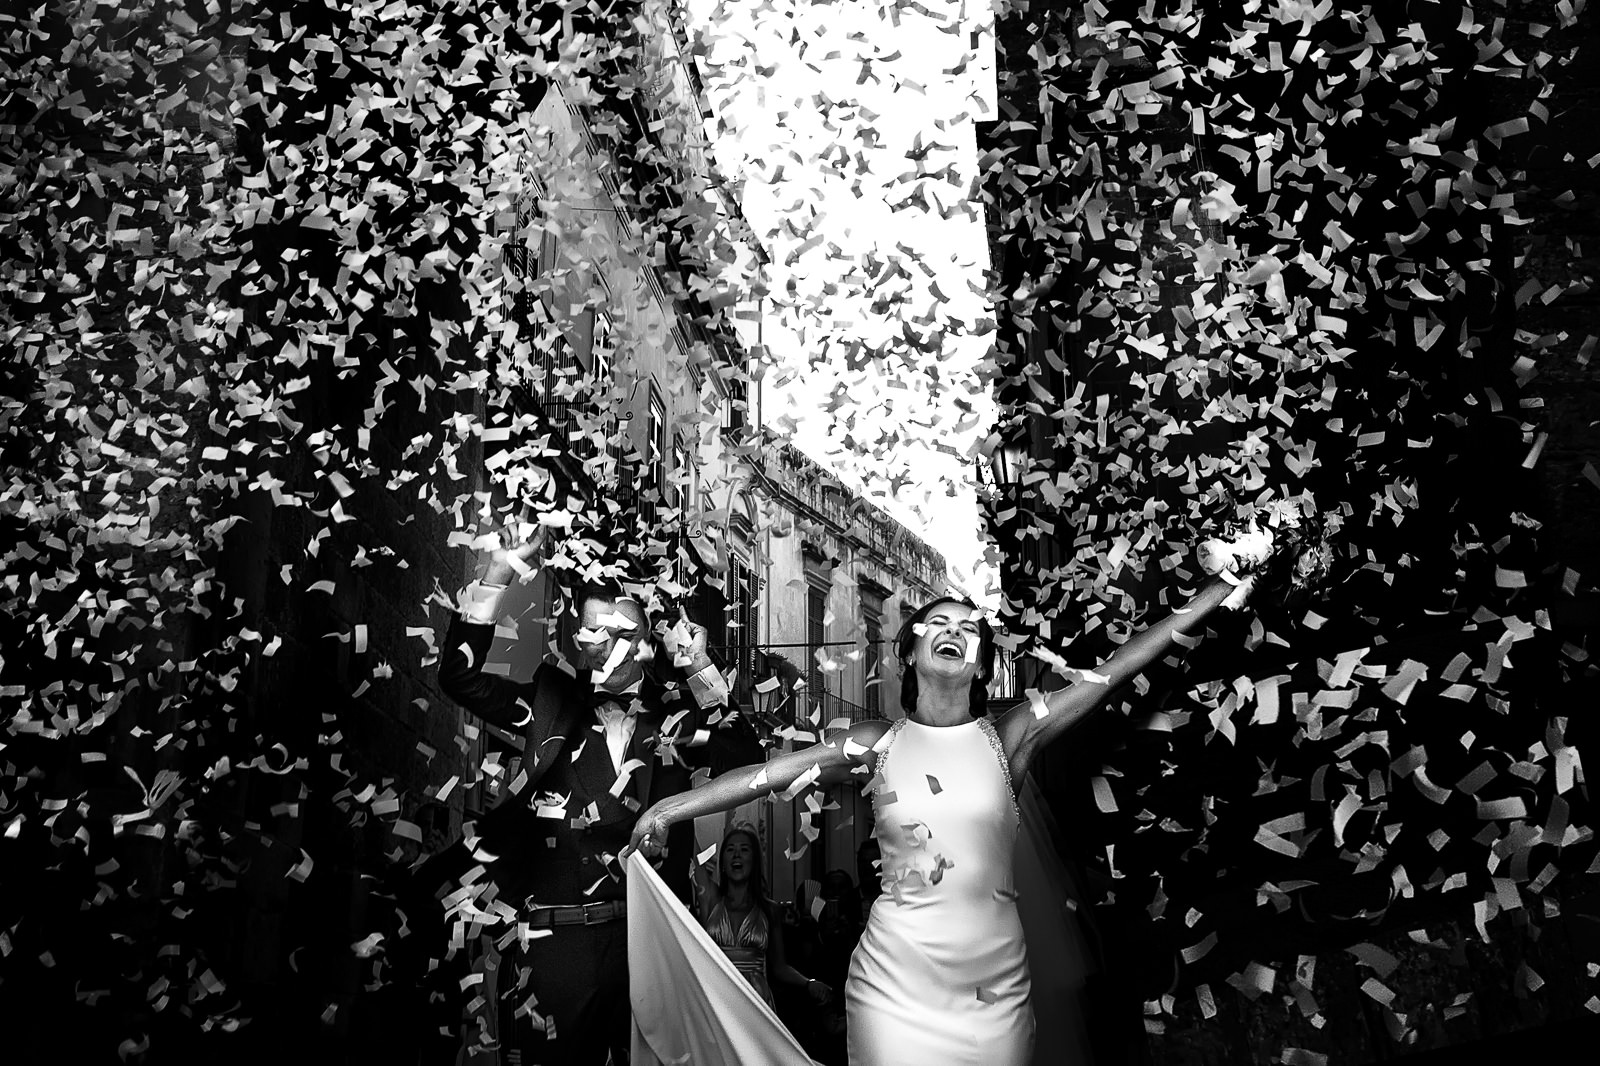 just-married-couple-under-shower-of-confetti-photo-by-rino-cordella-wedding-photographer-lecce-italy